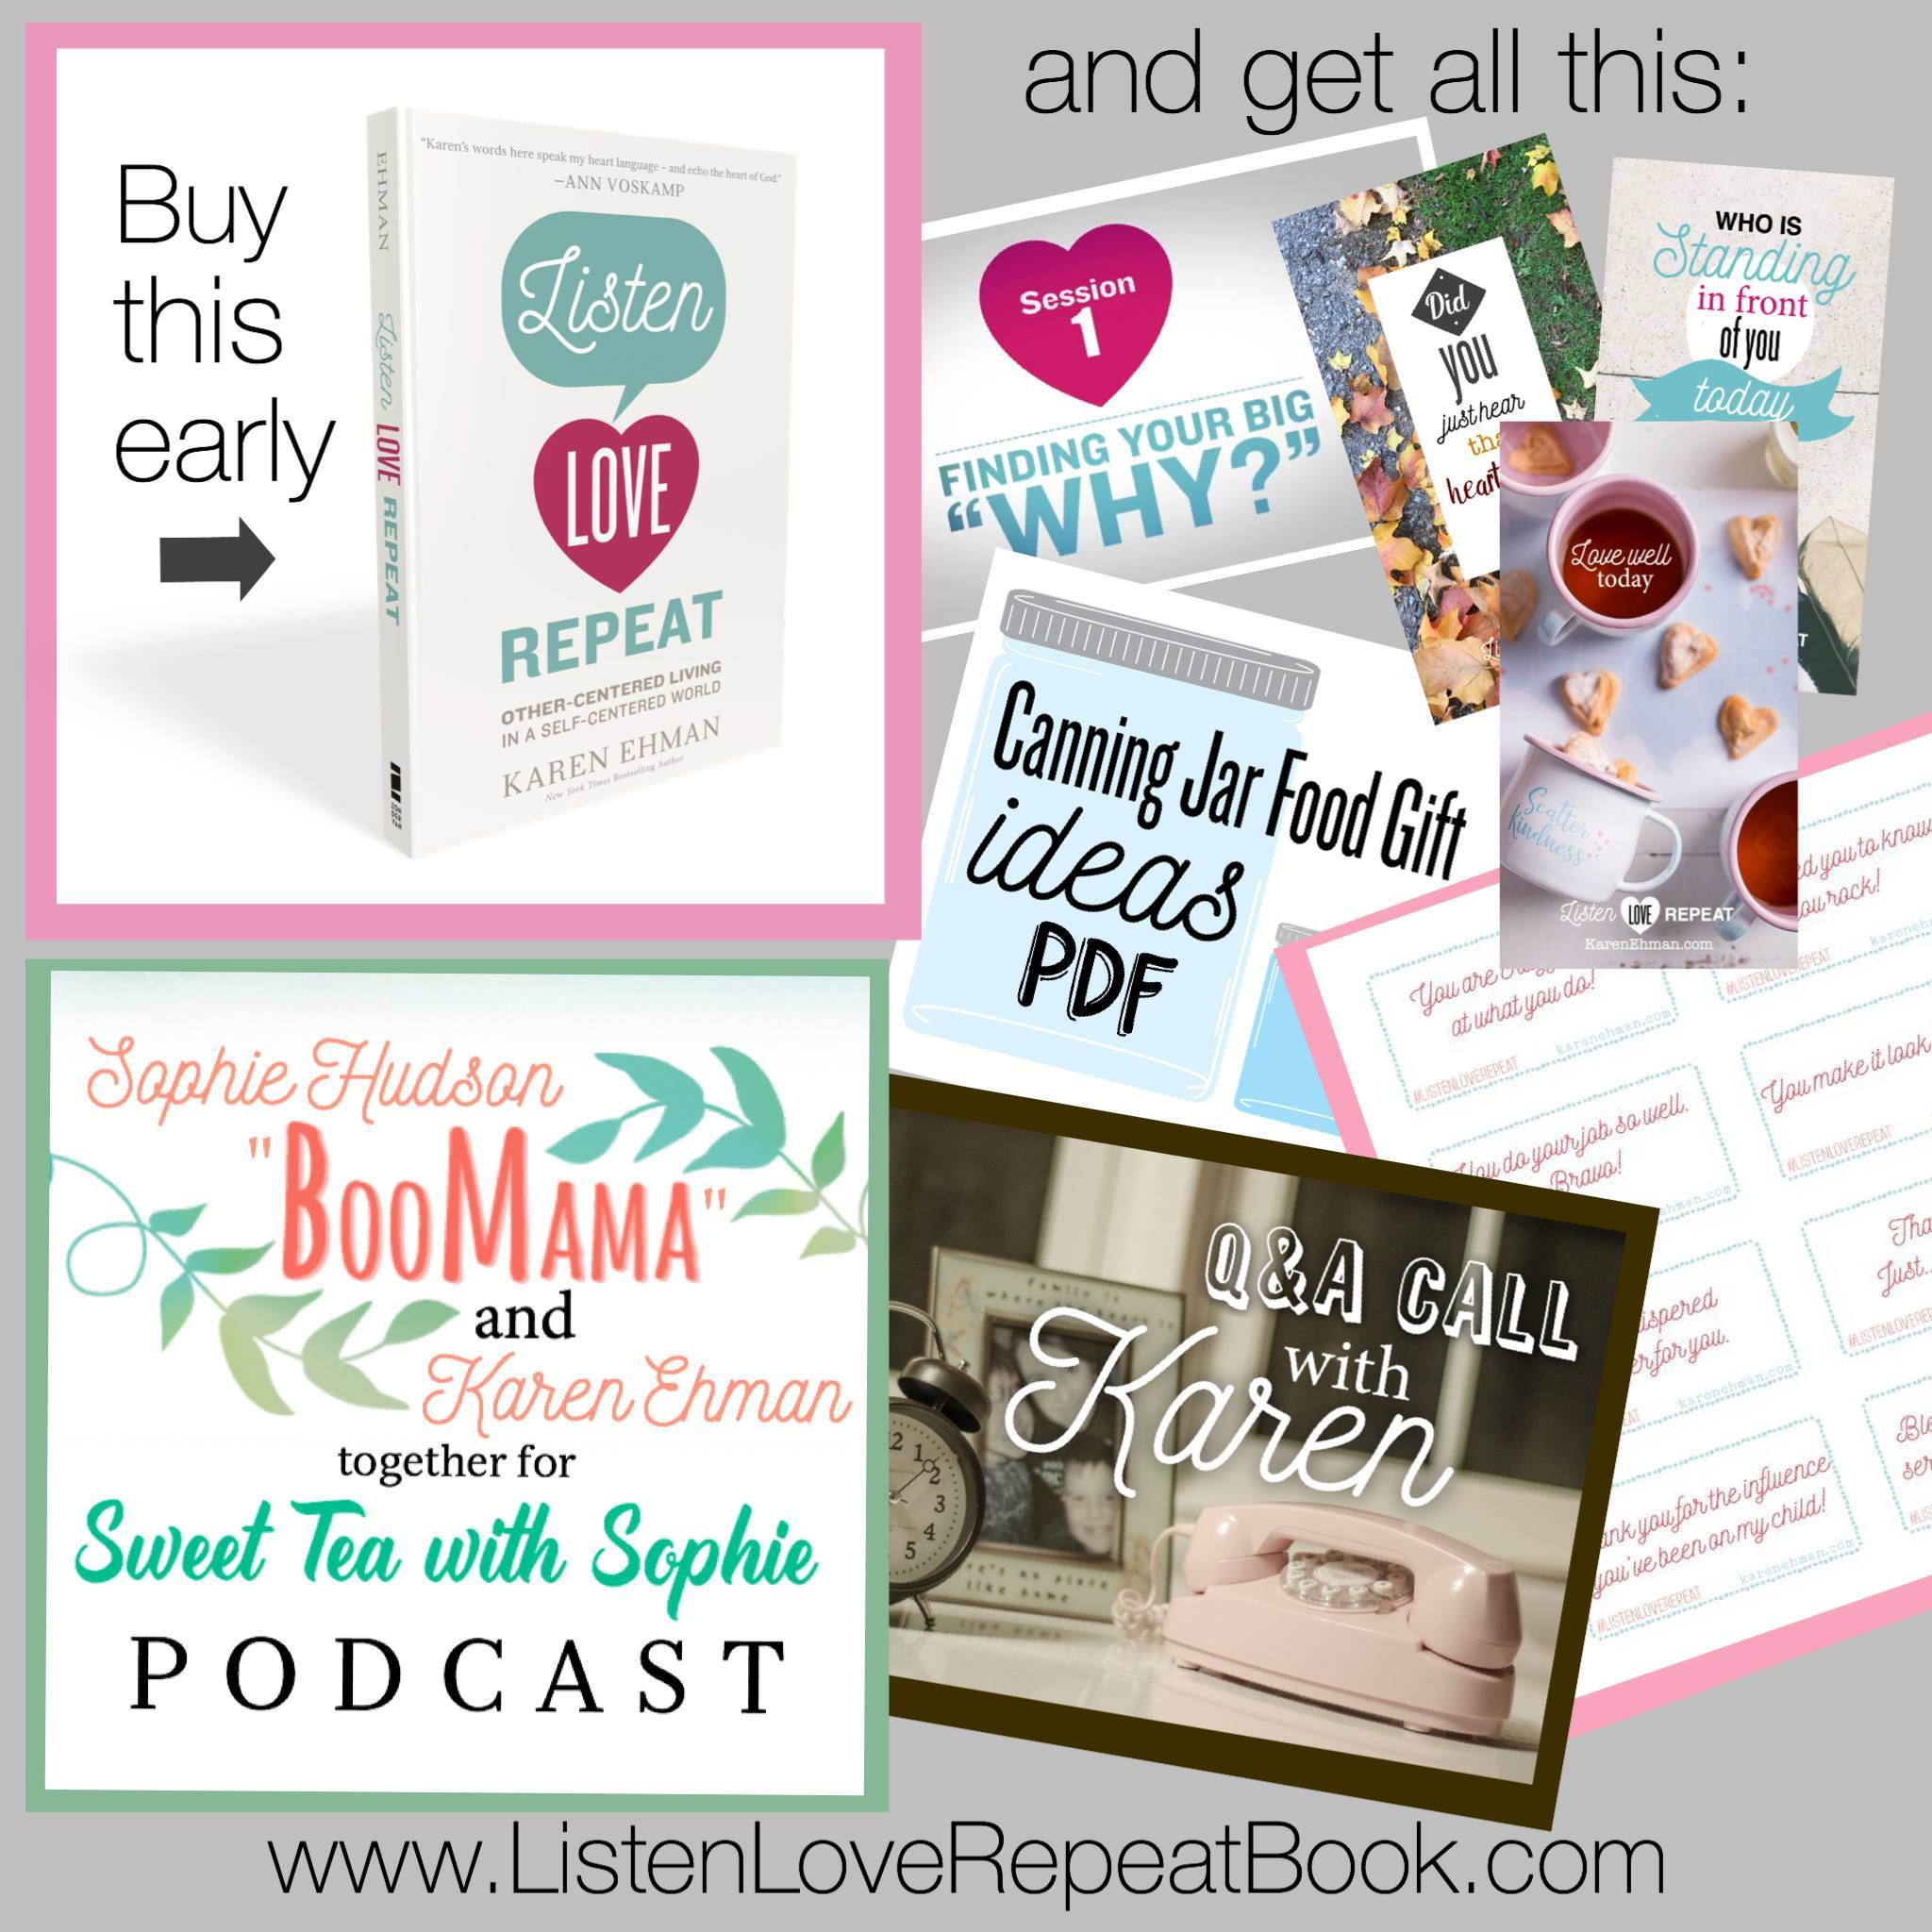 FREEBIE BUNDLE when you pre-order #ListenLoveRepeat by Karen Ehman!